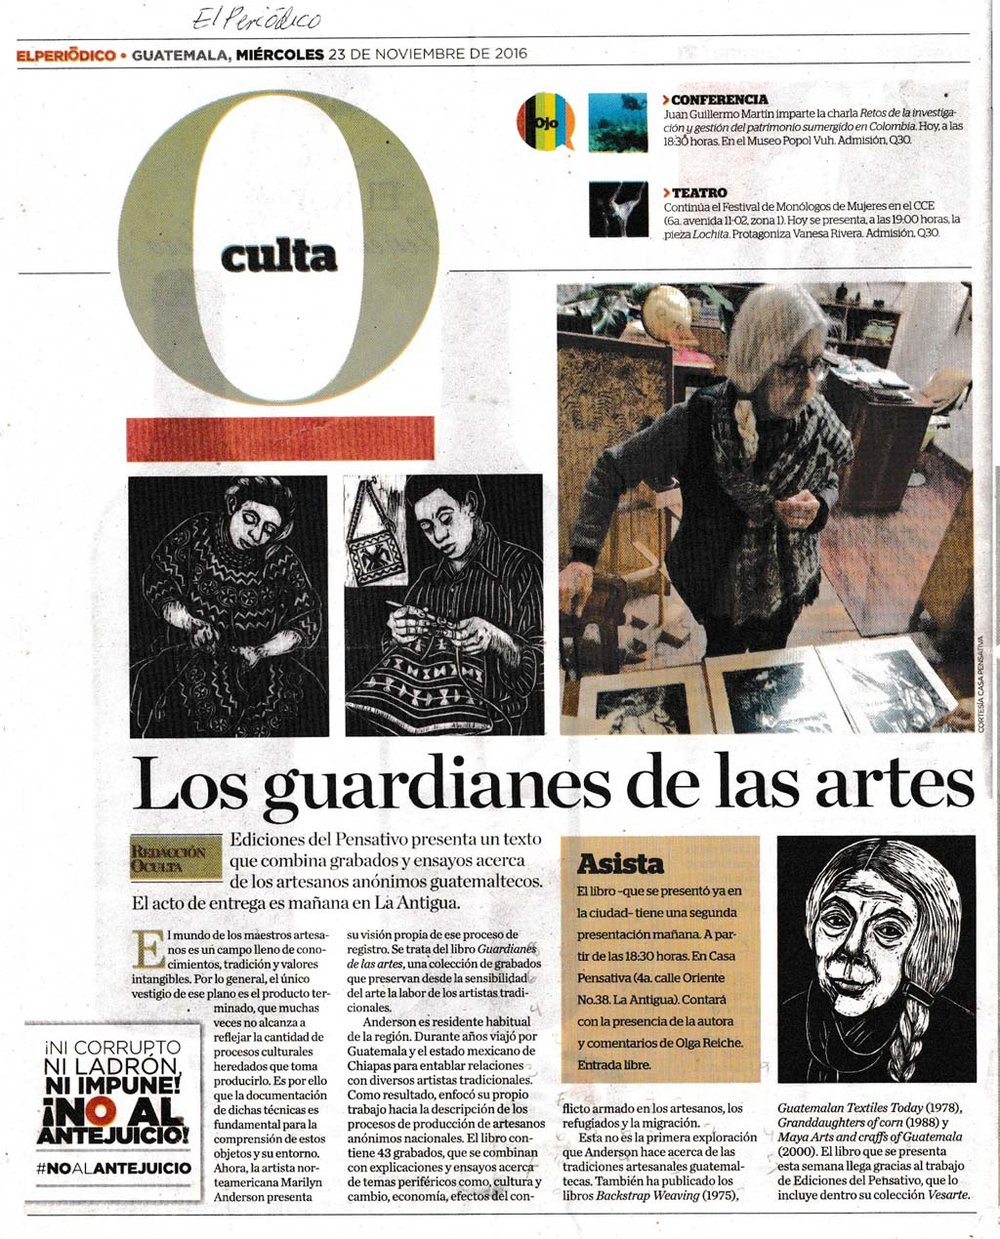 El-periodico-book-review.jpg